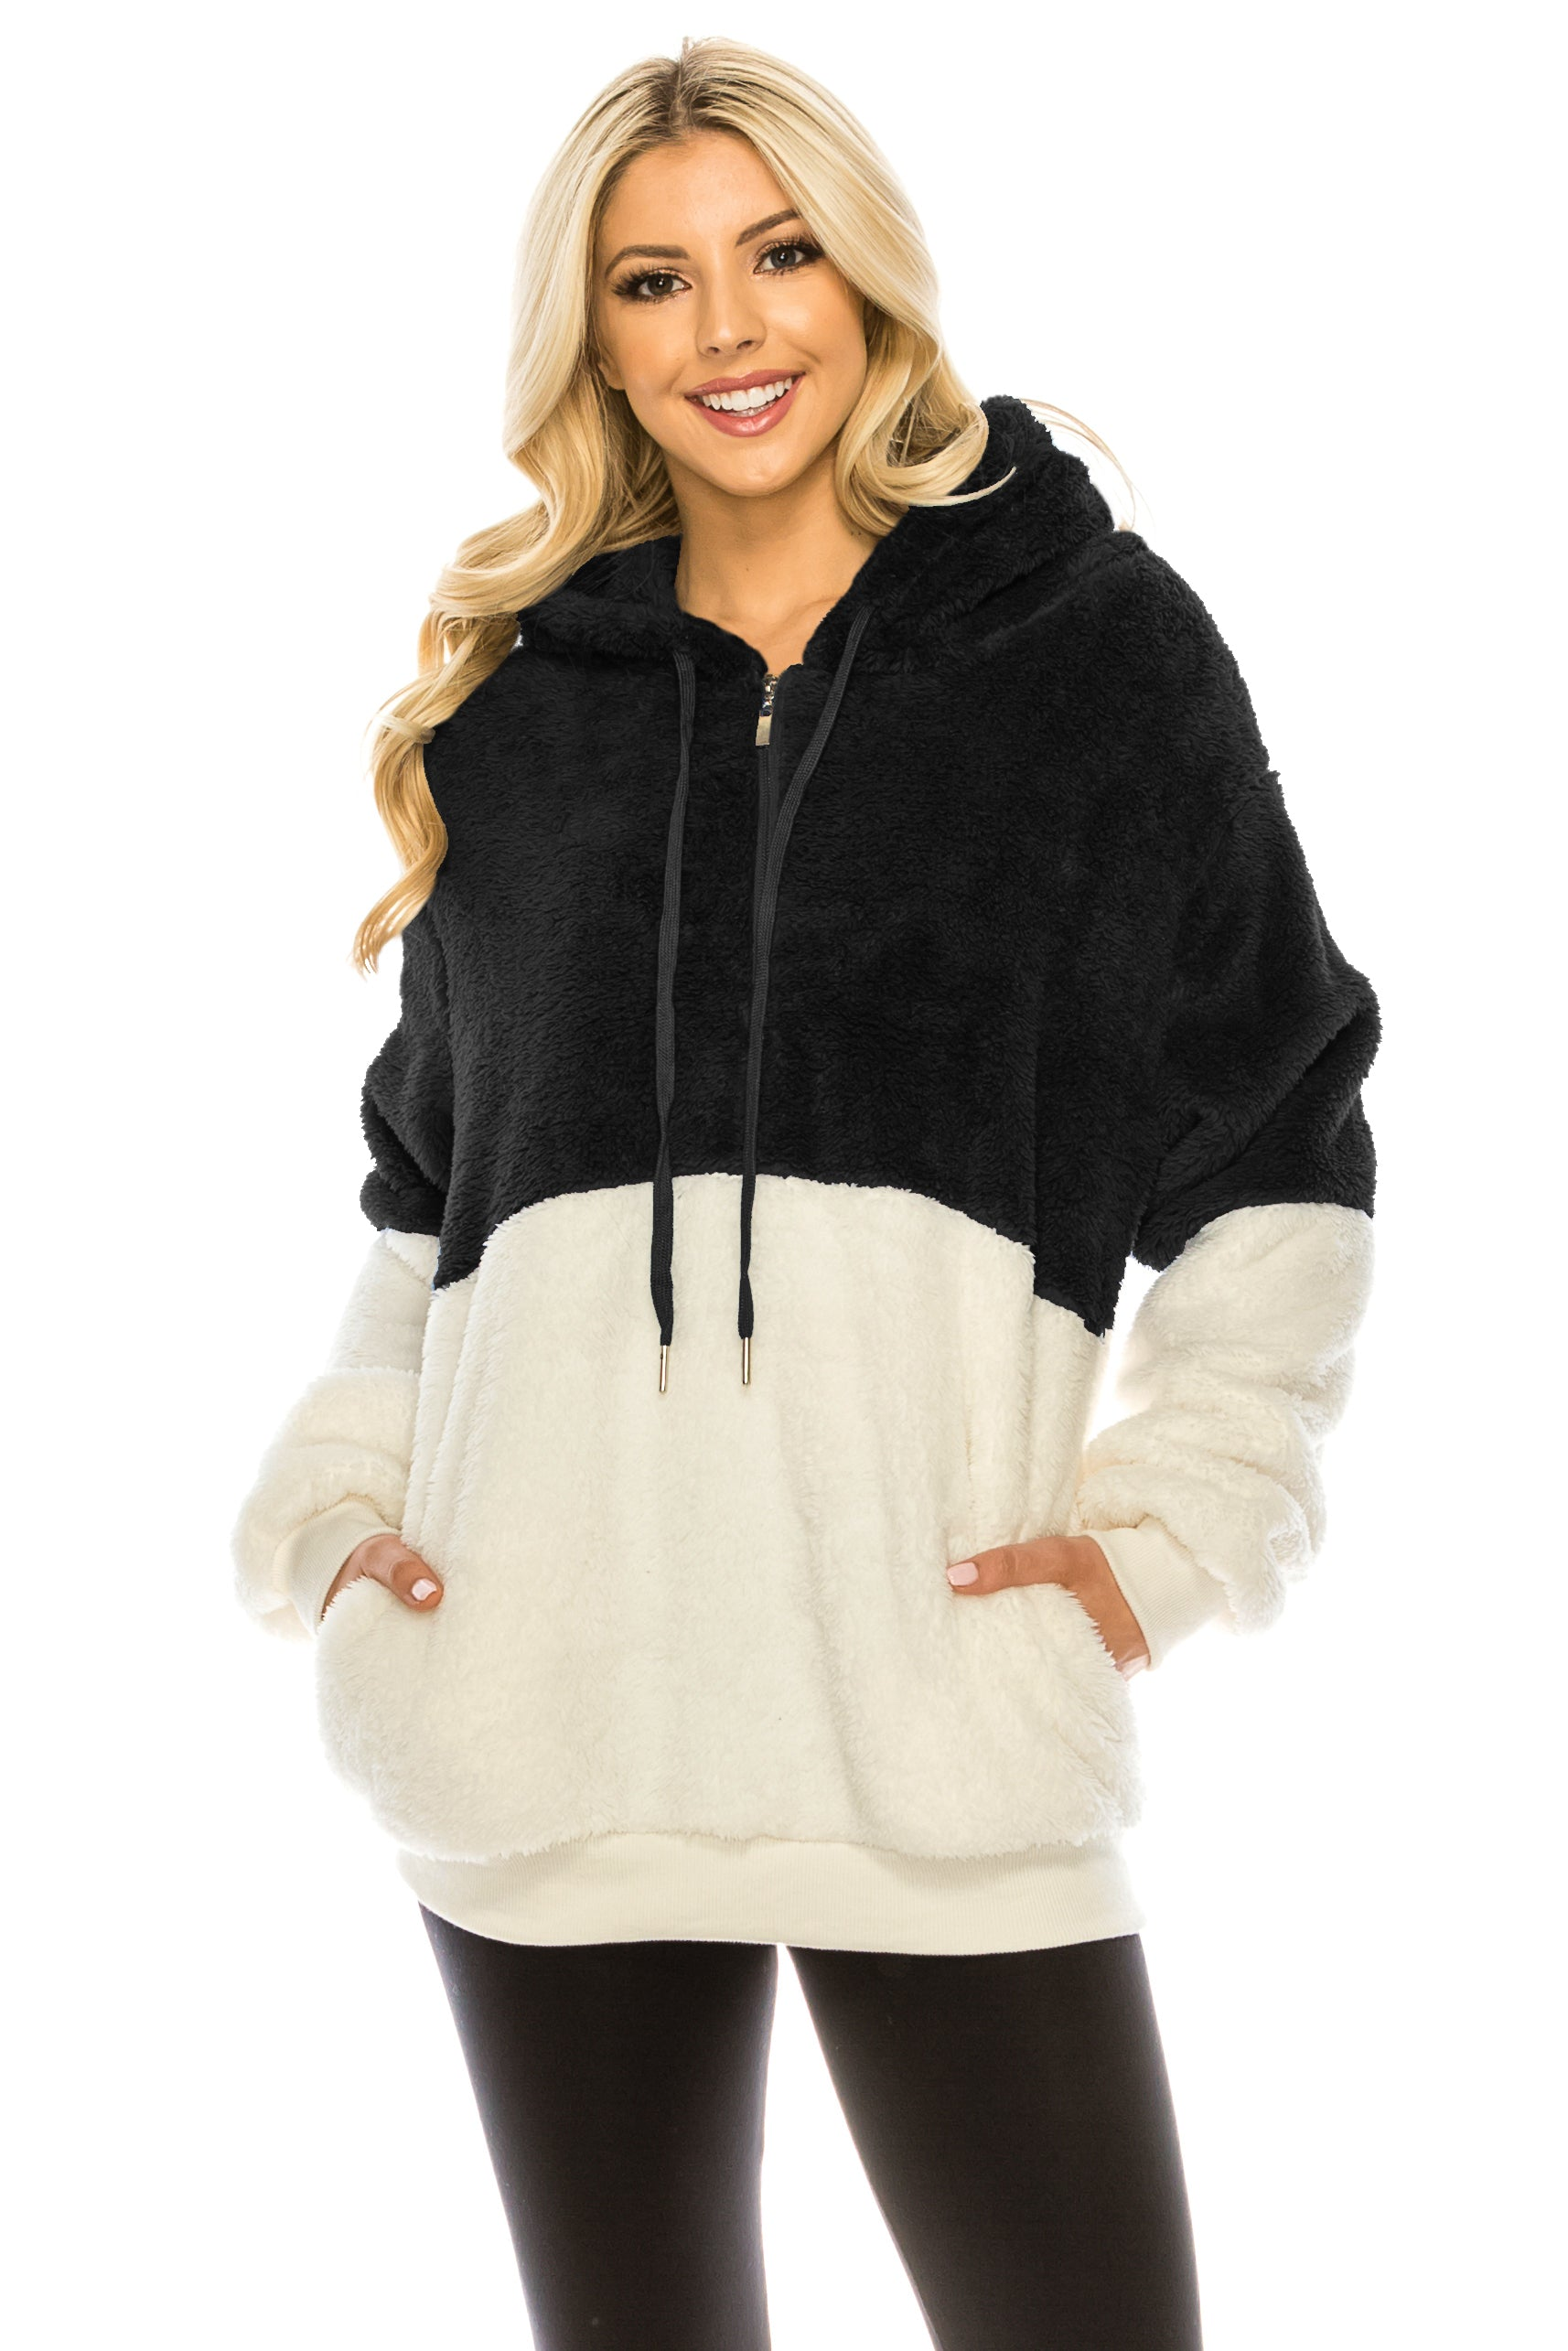 Haute Edition Women's Colorblock and Solid 1/4 Zip Sherpa Hoodie